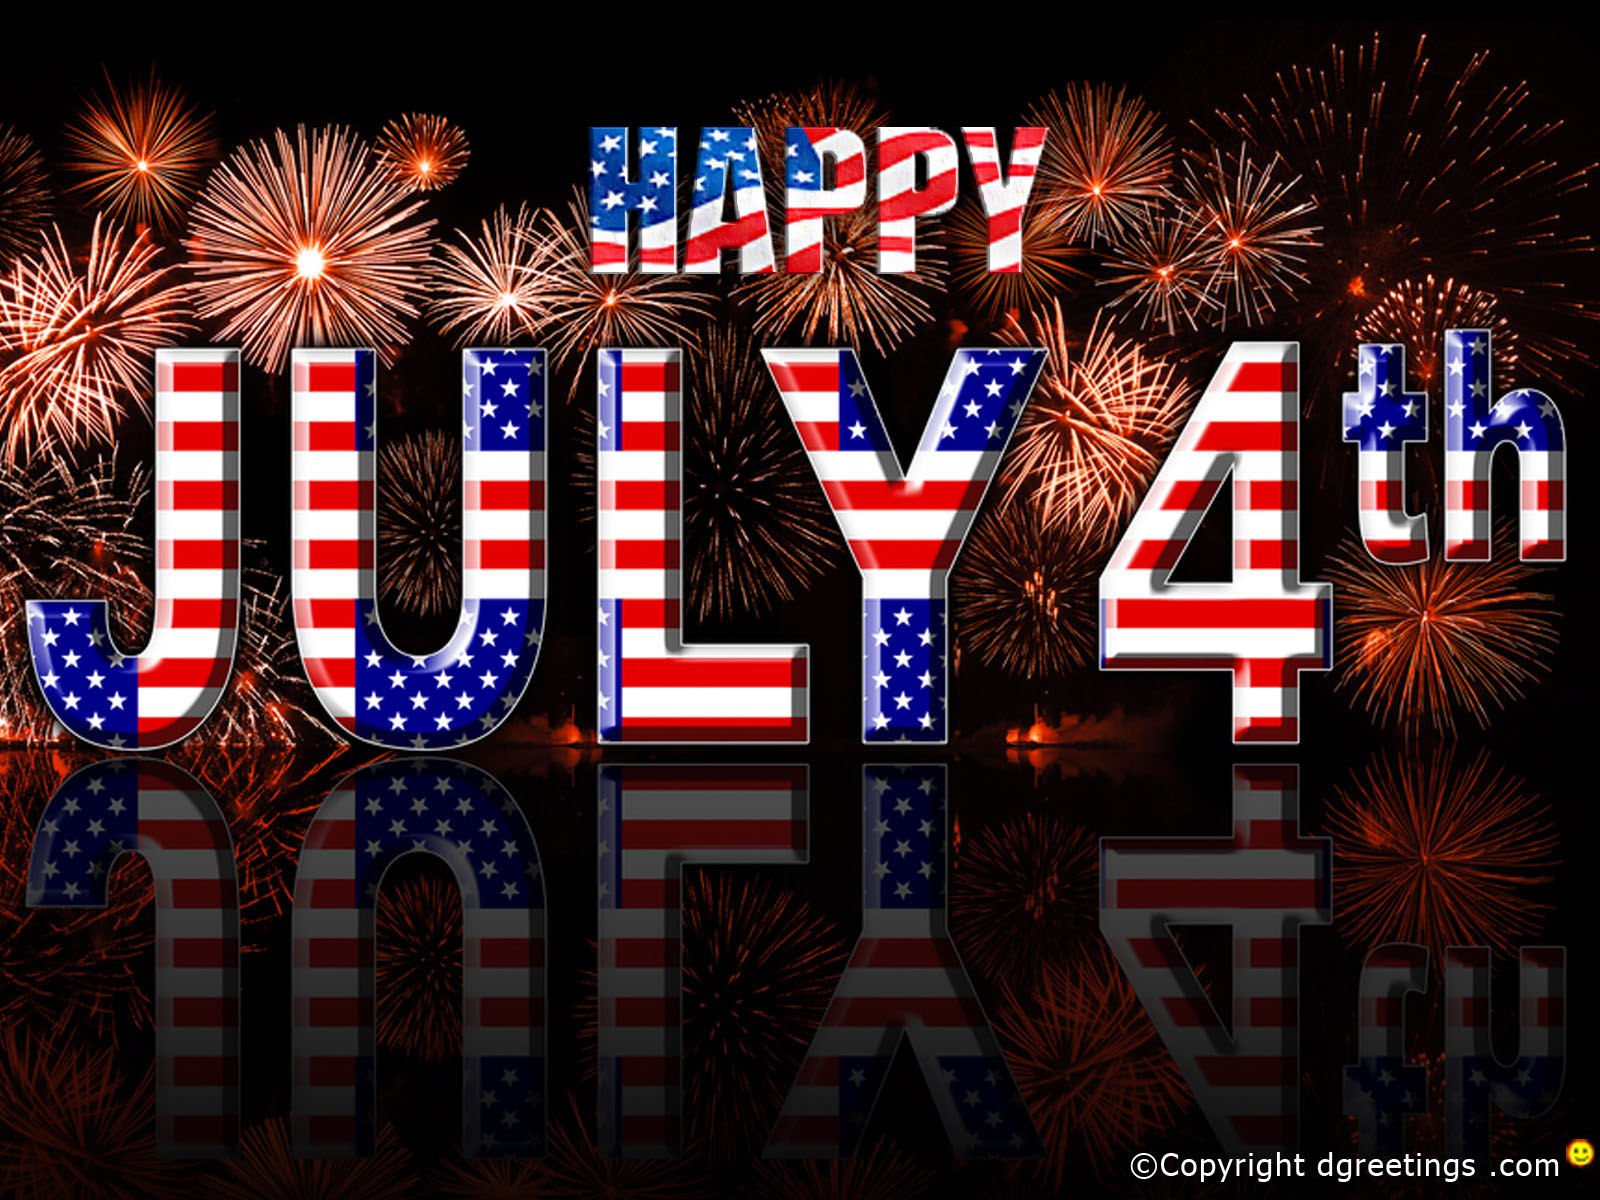 4th of July Wallpapers Fourth July Wallpapers July Fourth Wallpapers 1600x1200